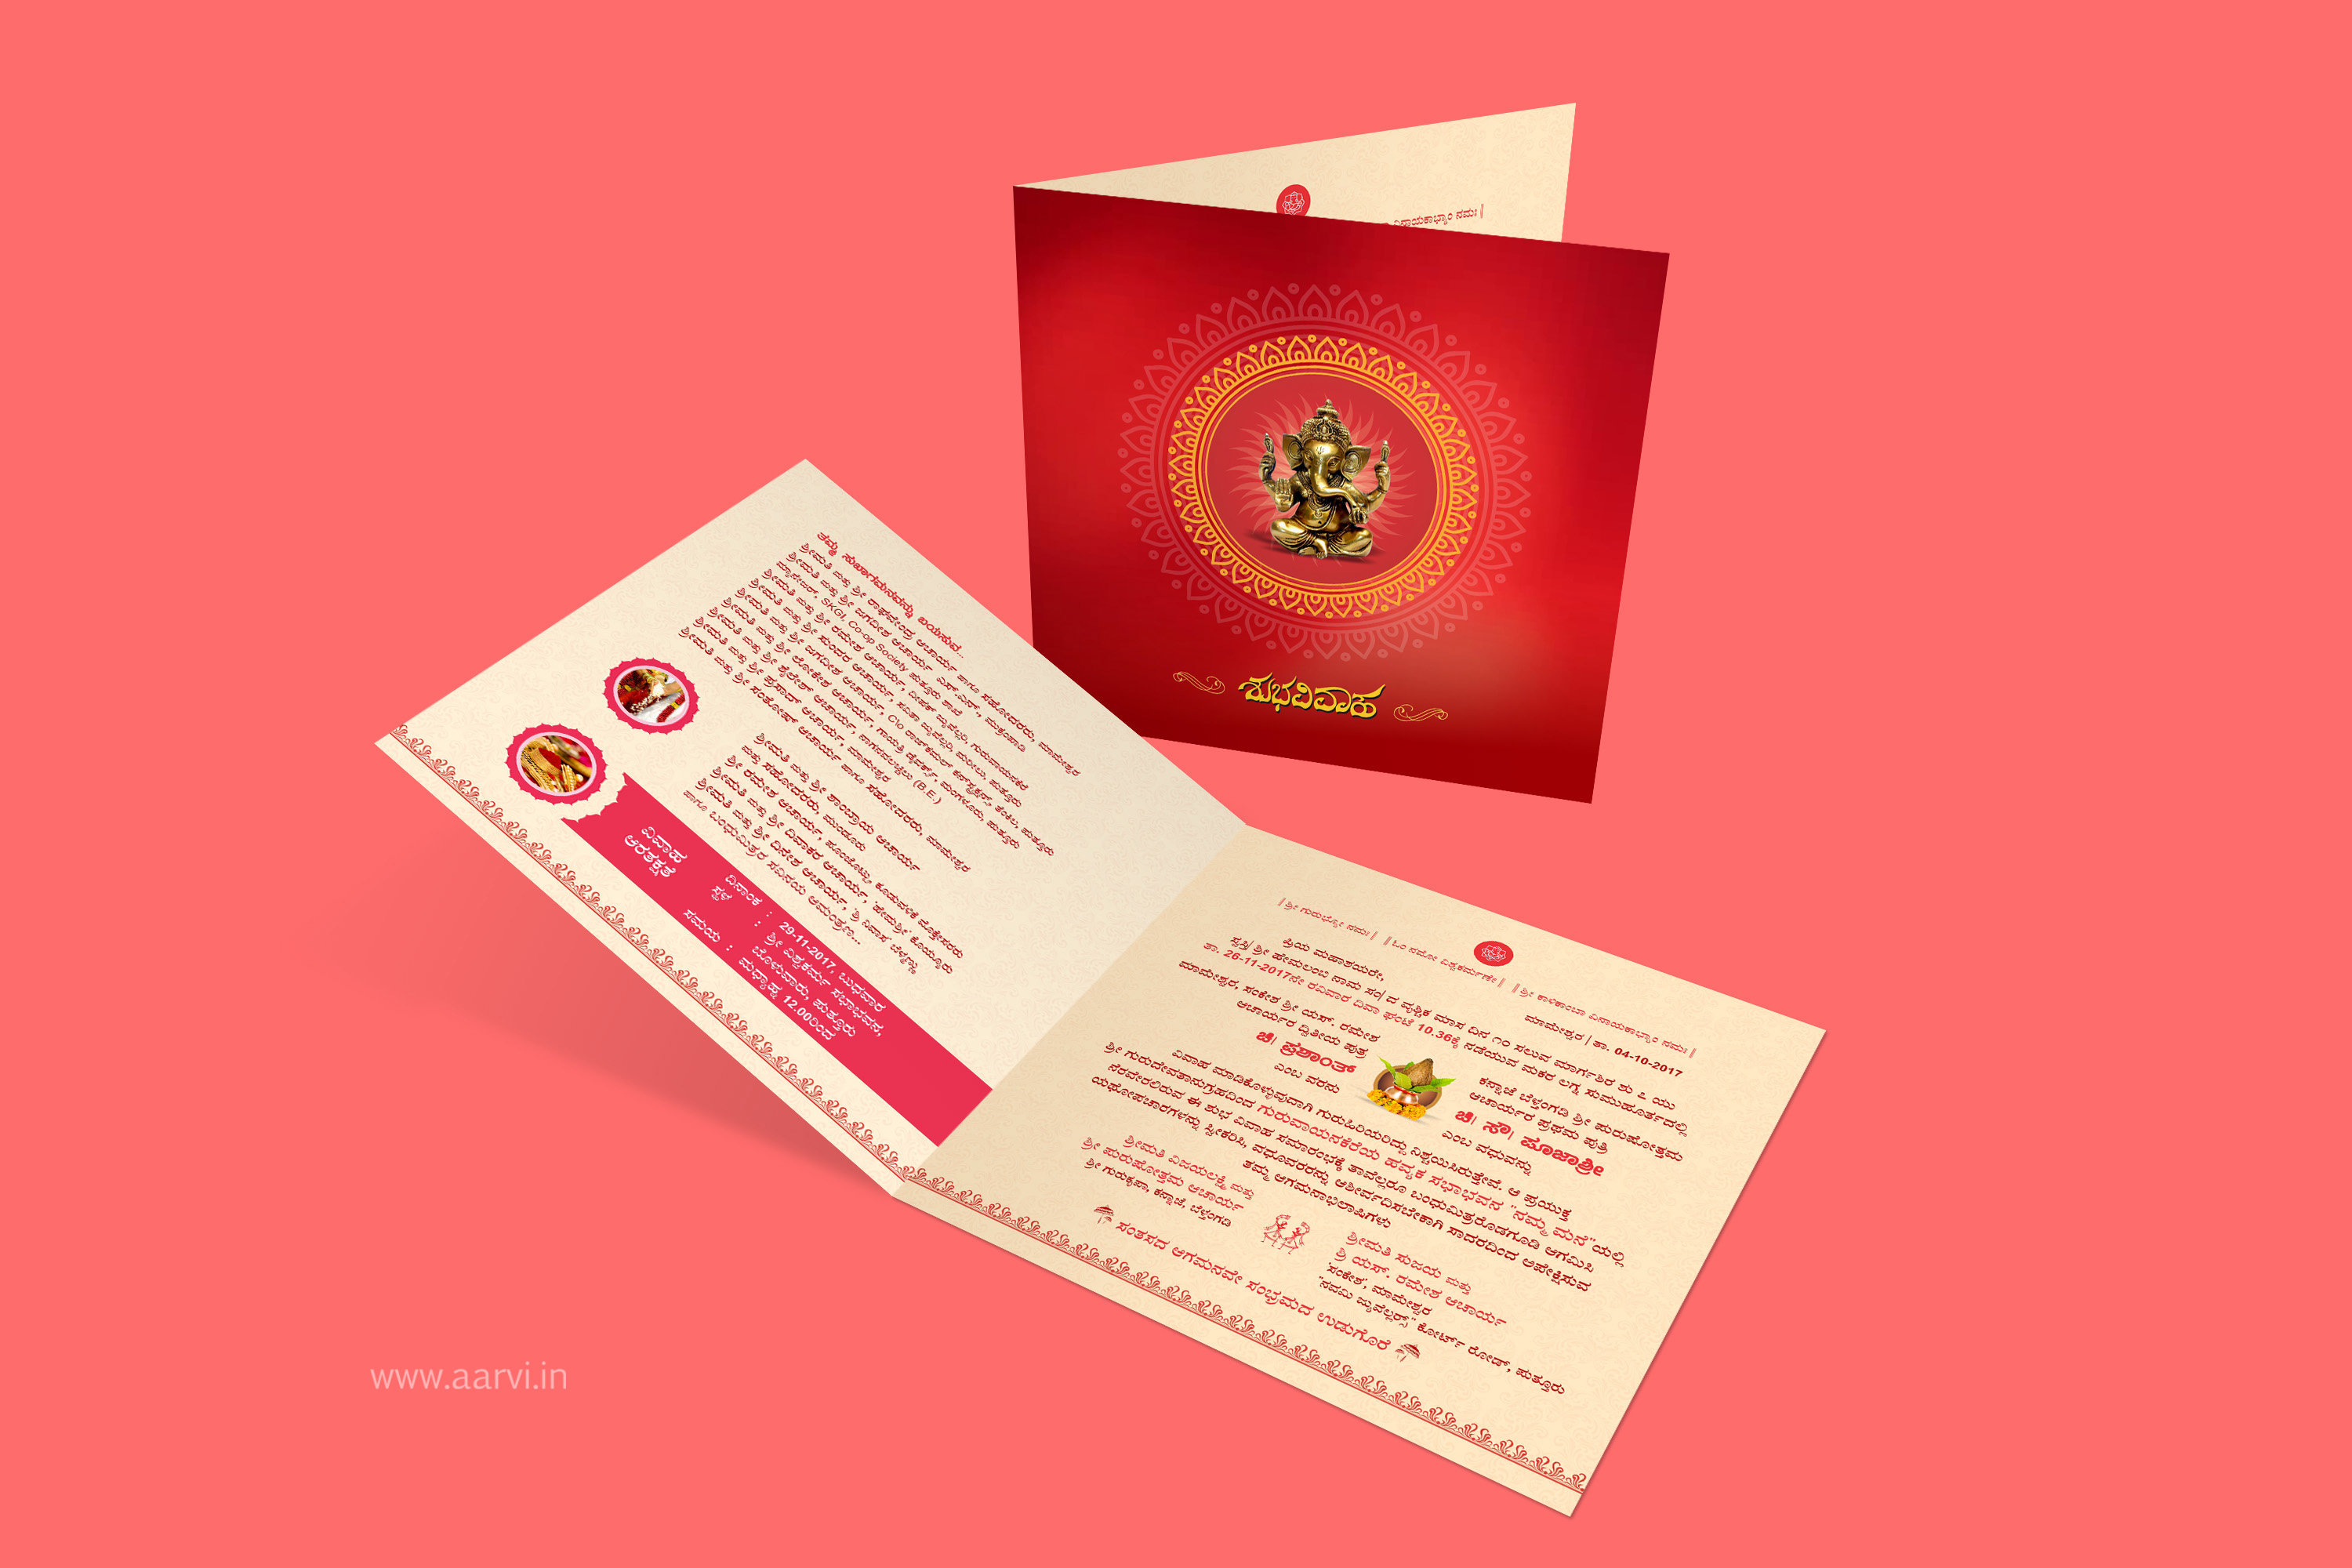 Creative Wedding Invitation | Aarvi Intergraphics